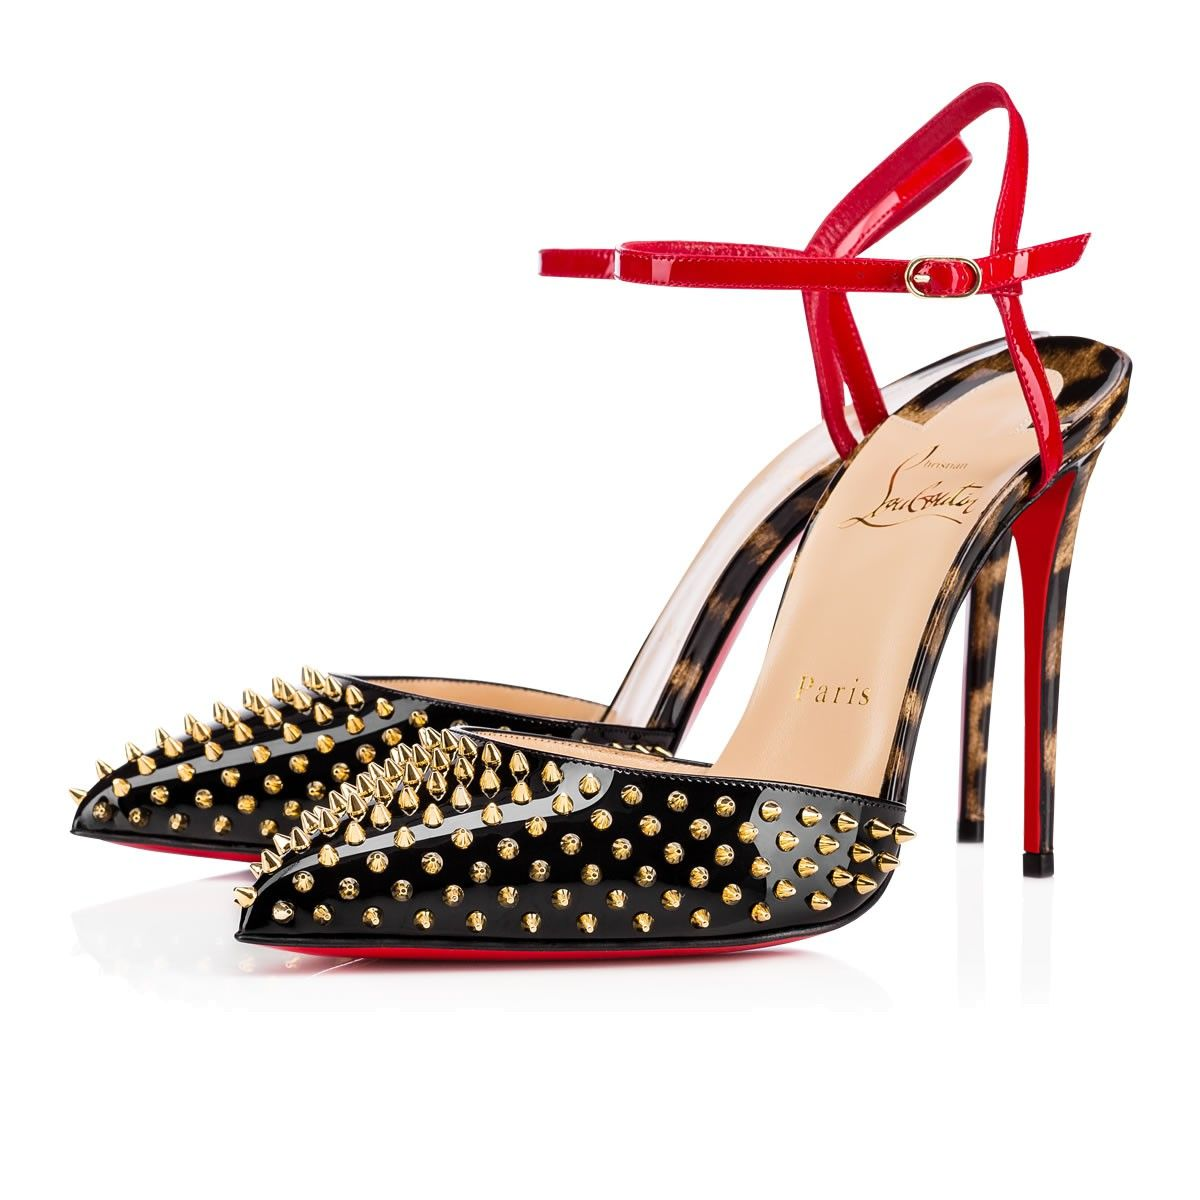 74dcd07d5e46 Shoes - Baila Spike - Christian Louboutin